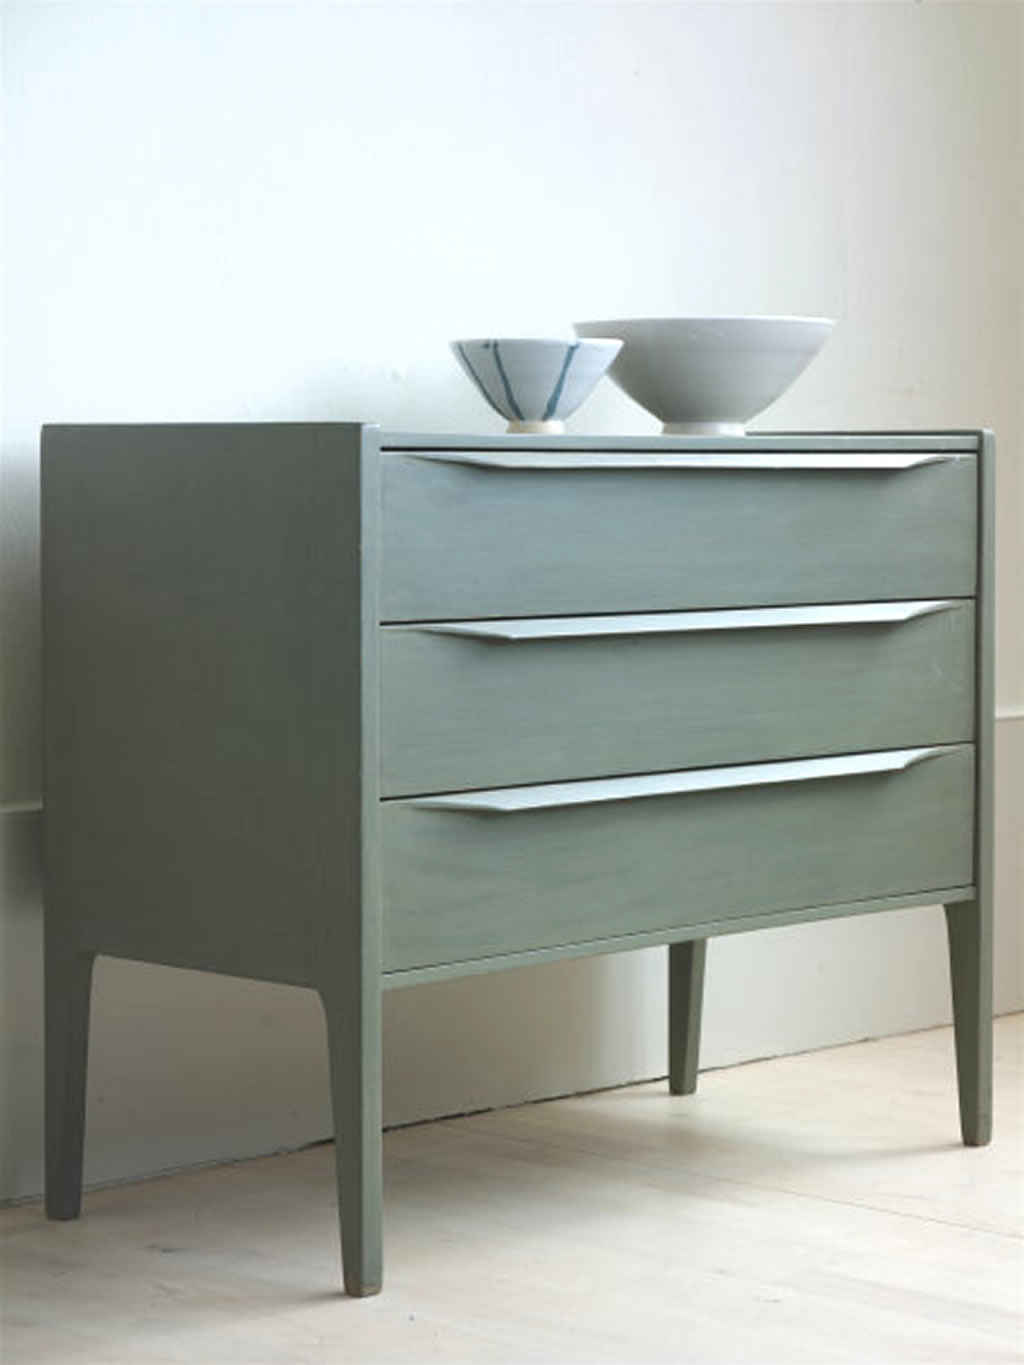 Oak Bedside Tables | Modern Bedside Tables | Contemporary Bedside Tables